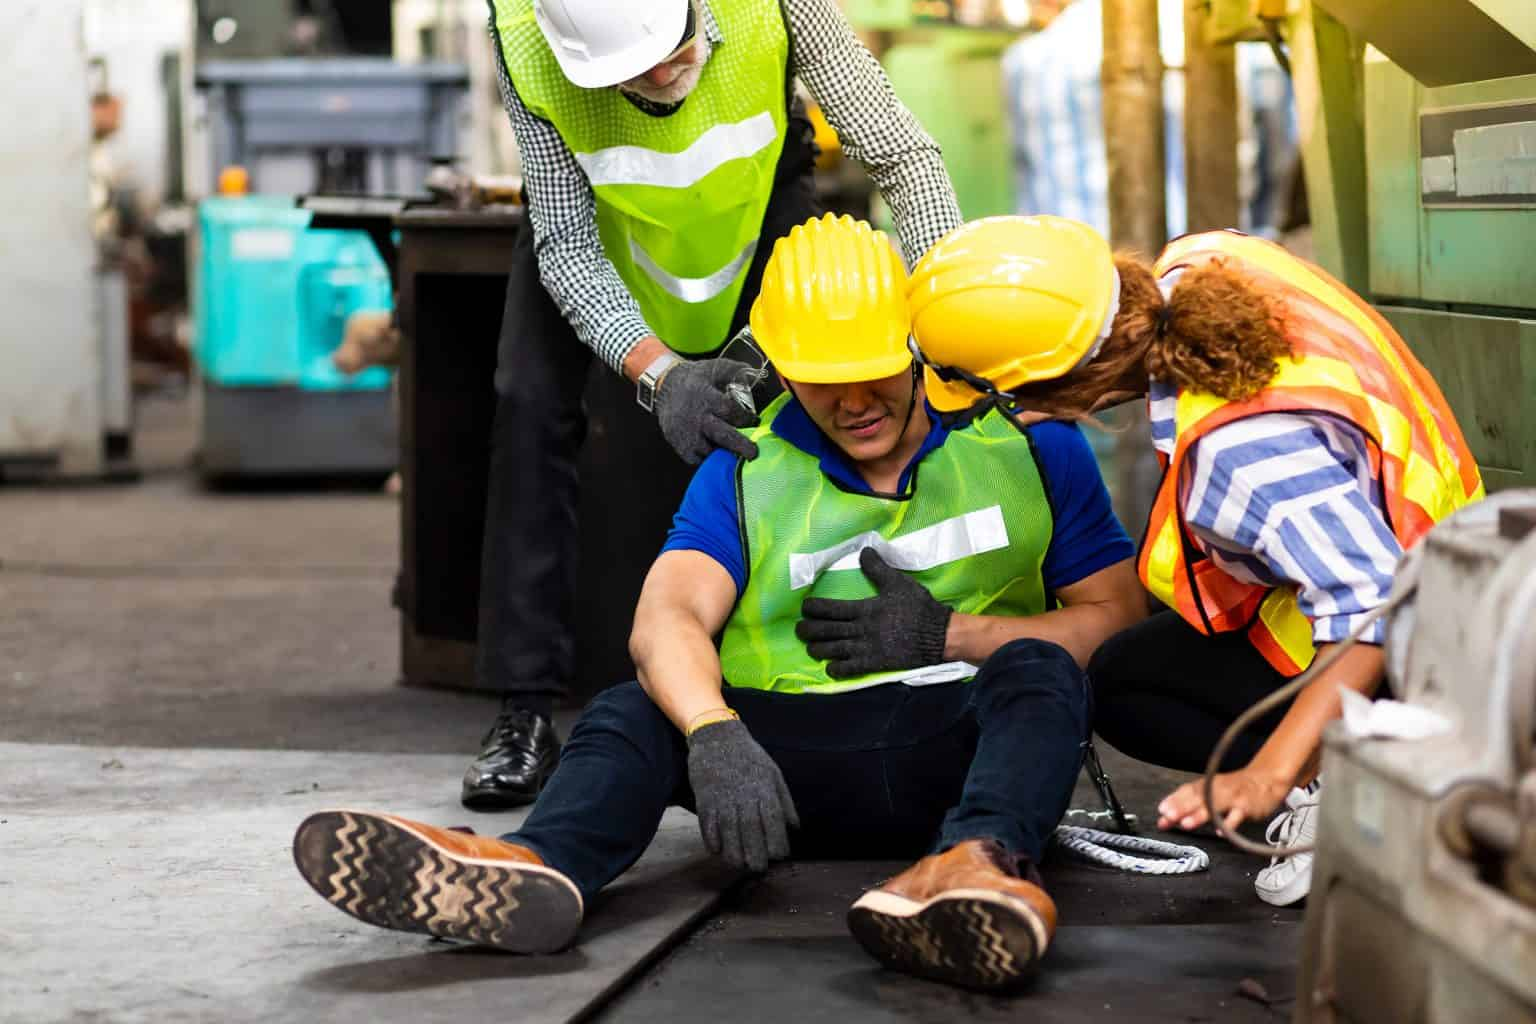 Injured at work. First steps to take to claim WorkCover compensation